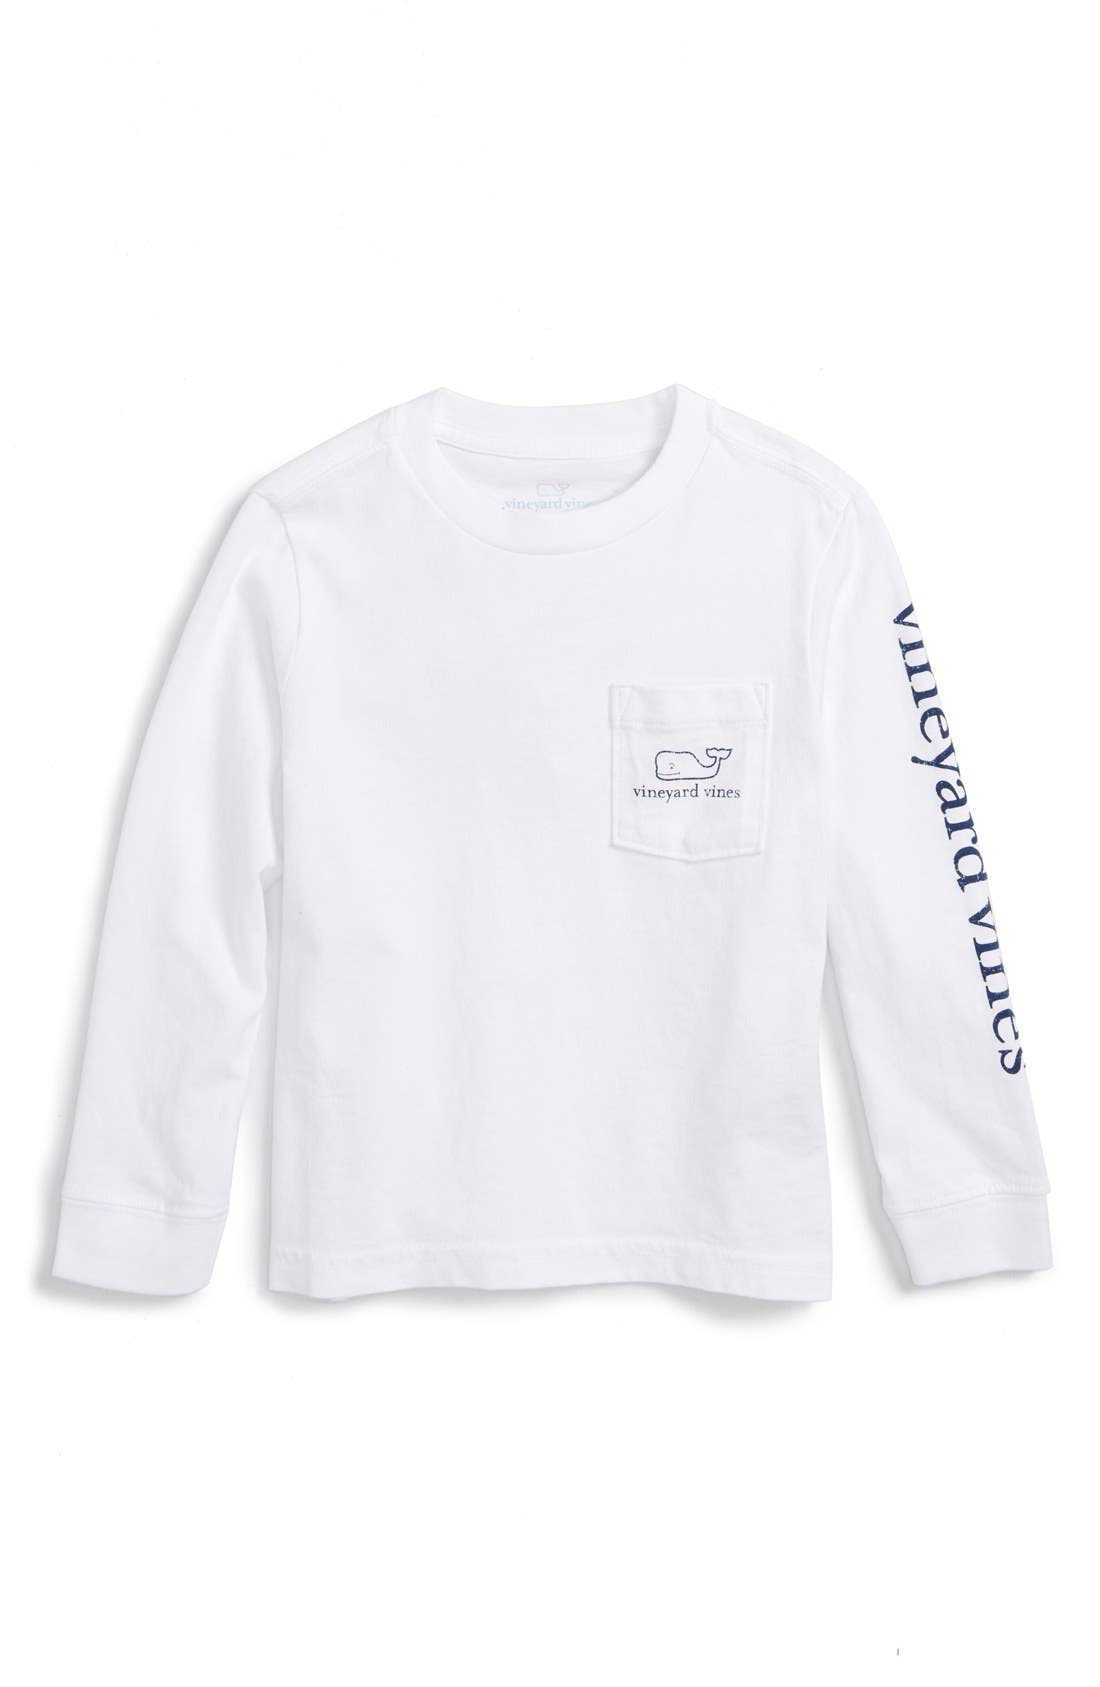 Vineyard Vines 'Vintage Whale' Graphic Long Sleeve T-Shirt (Toddler Boys & Little Boys)